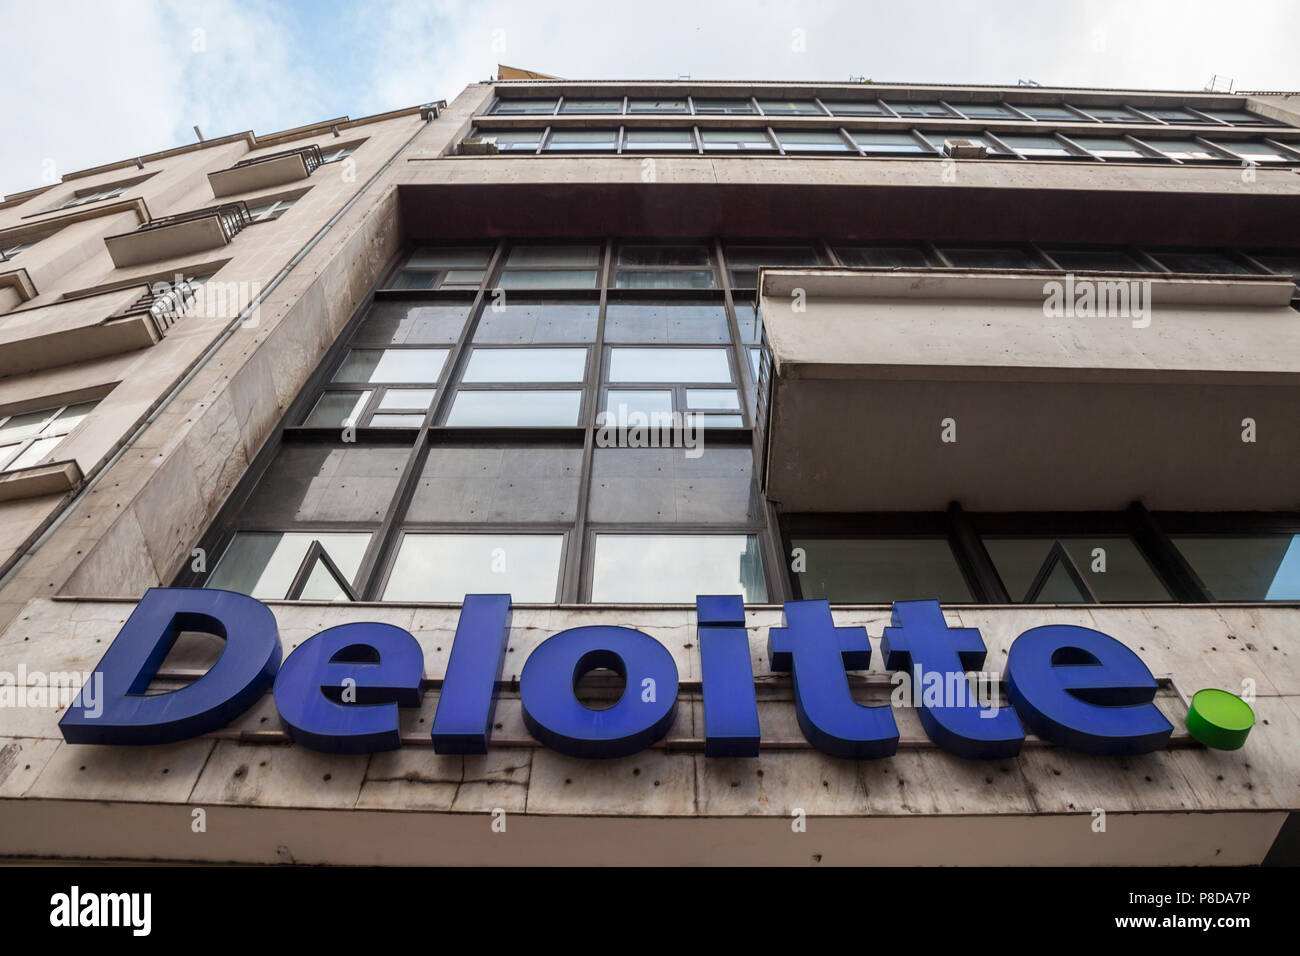 BELGRADE, SERBIA - JULY 8, 2018: Logo of Deloitte on their main office building in Belgrade. Deloitte is one of the main audit firms in the world, wit - Stock Image